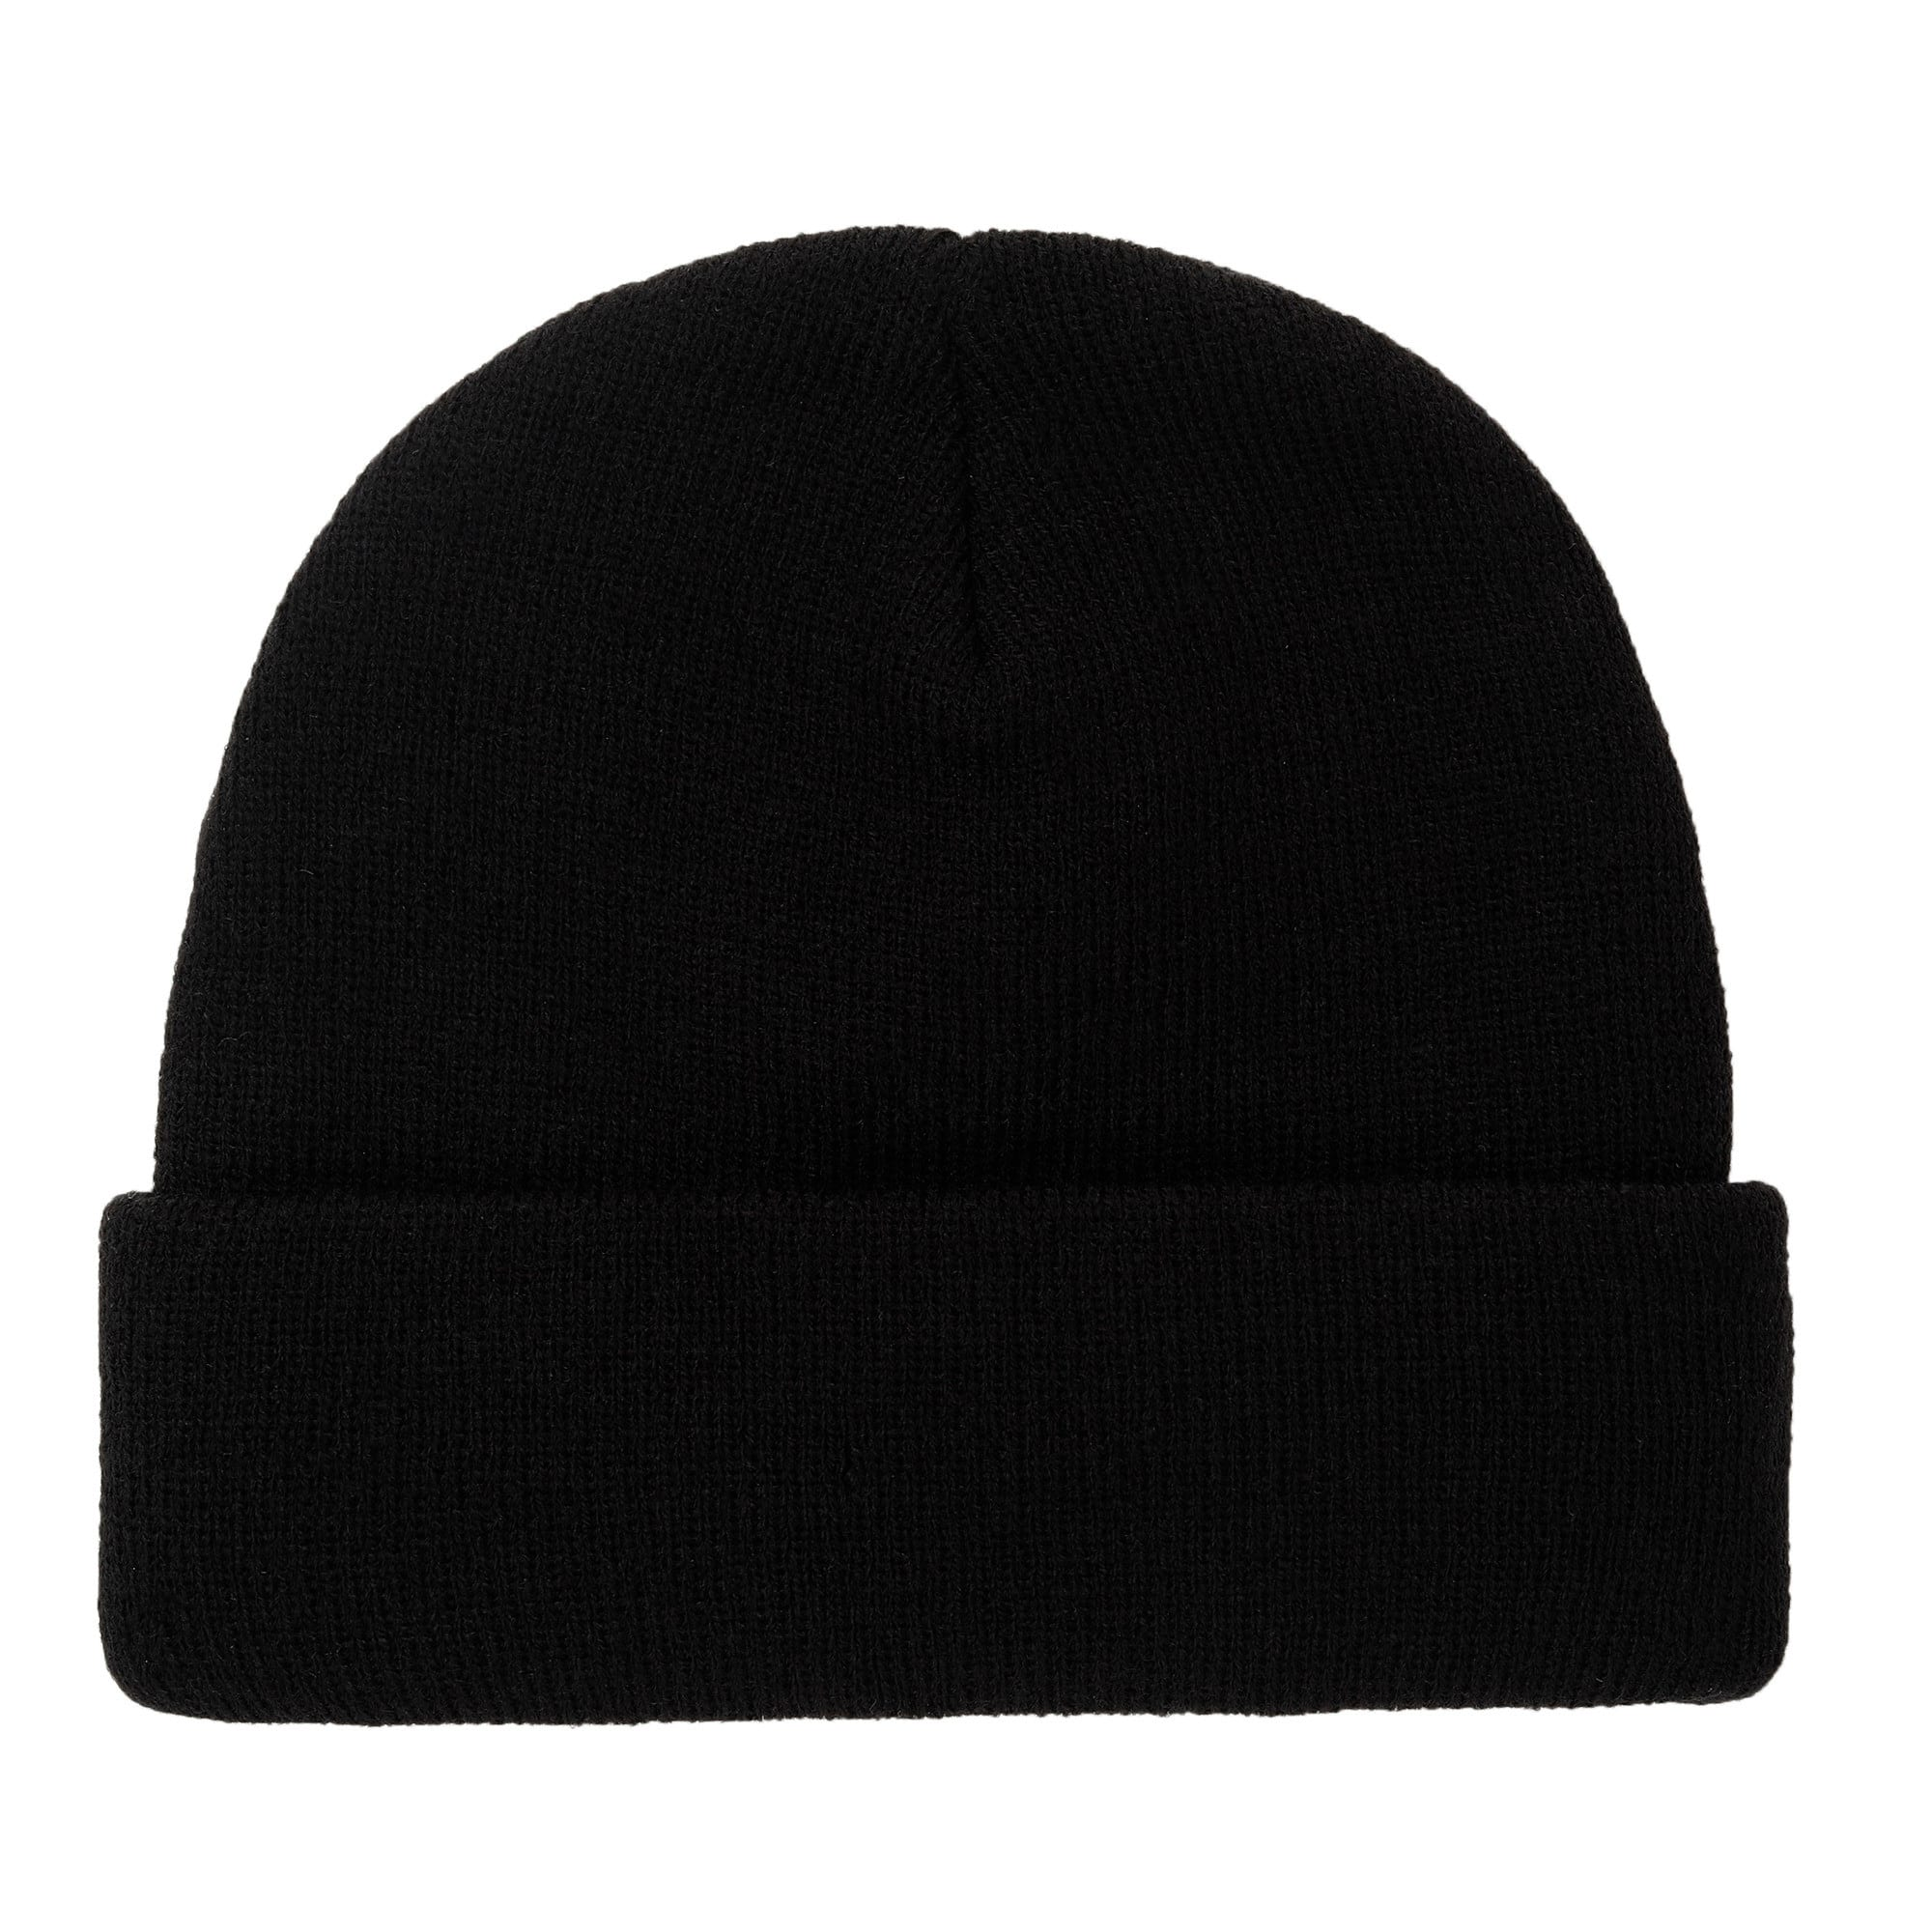 Thumbnail 3 of Epoch Street Beanie, Puma Black, medium-IND